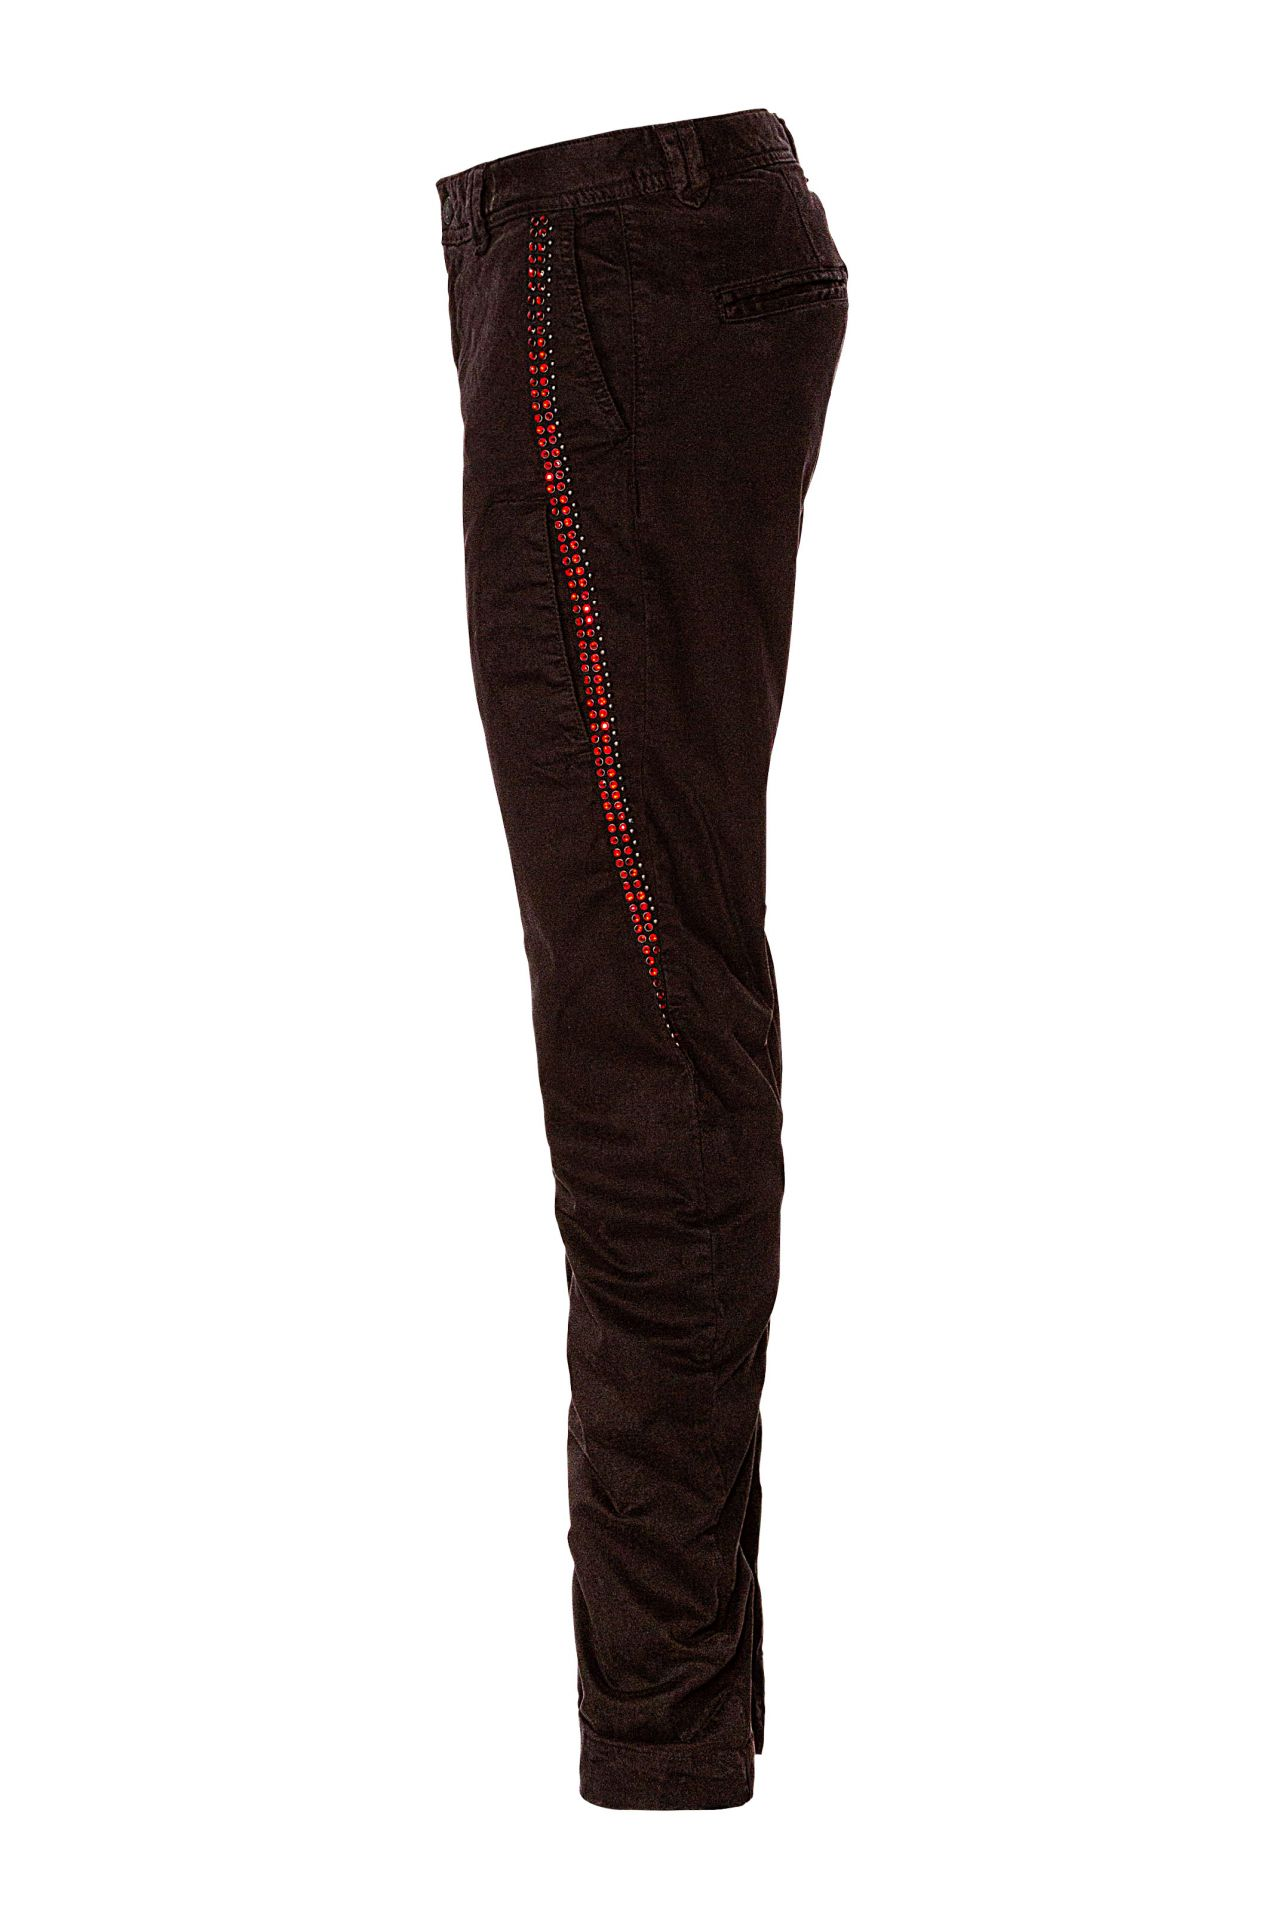 CHINO IN BLACK WITH RED CRYSTALS